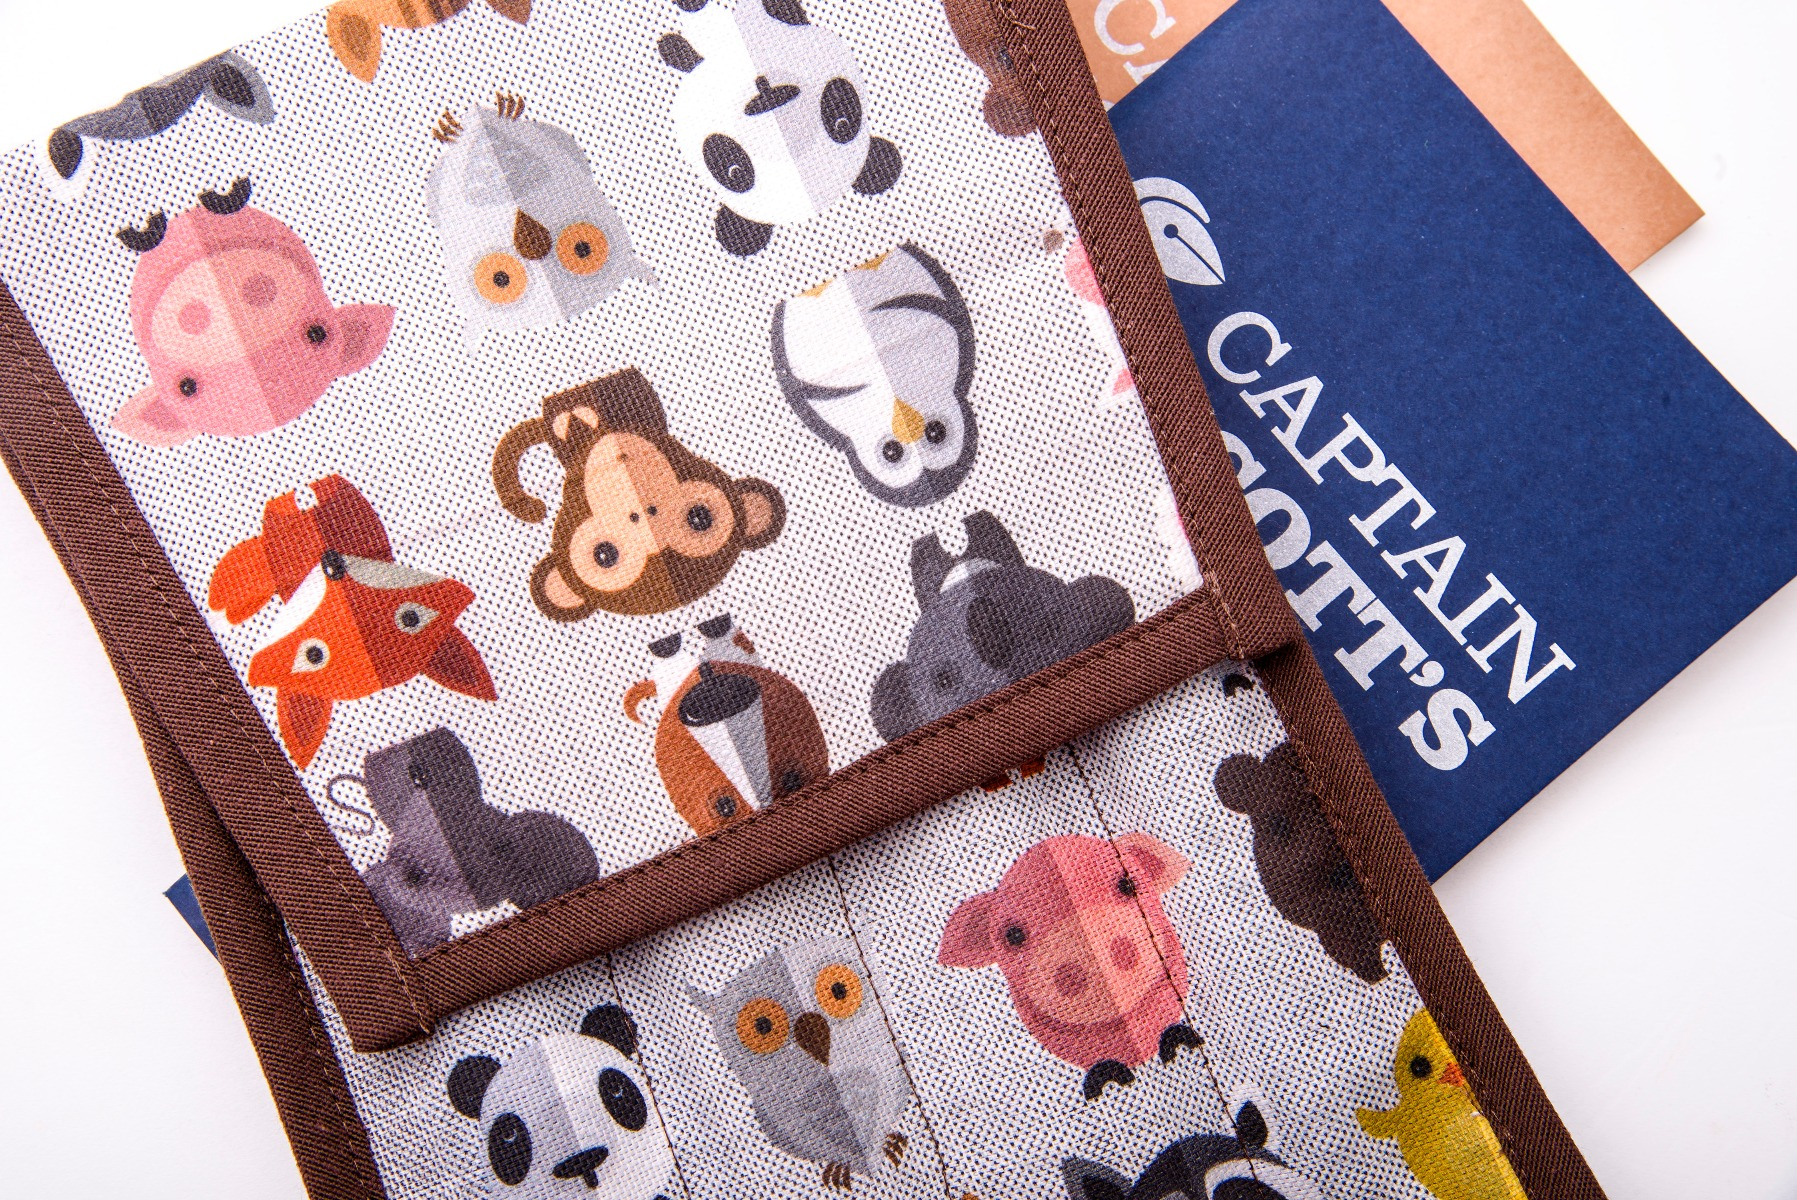 Case For Notebooks And Writing Accessories - Animals